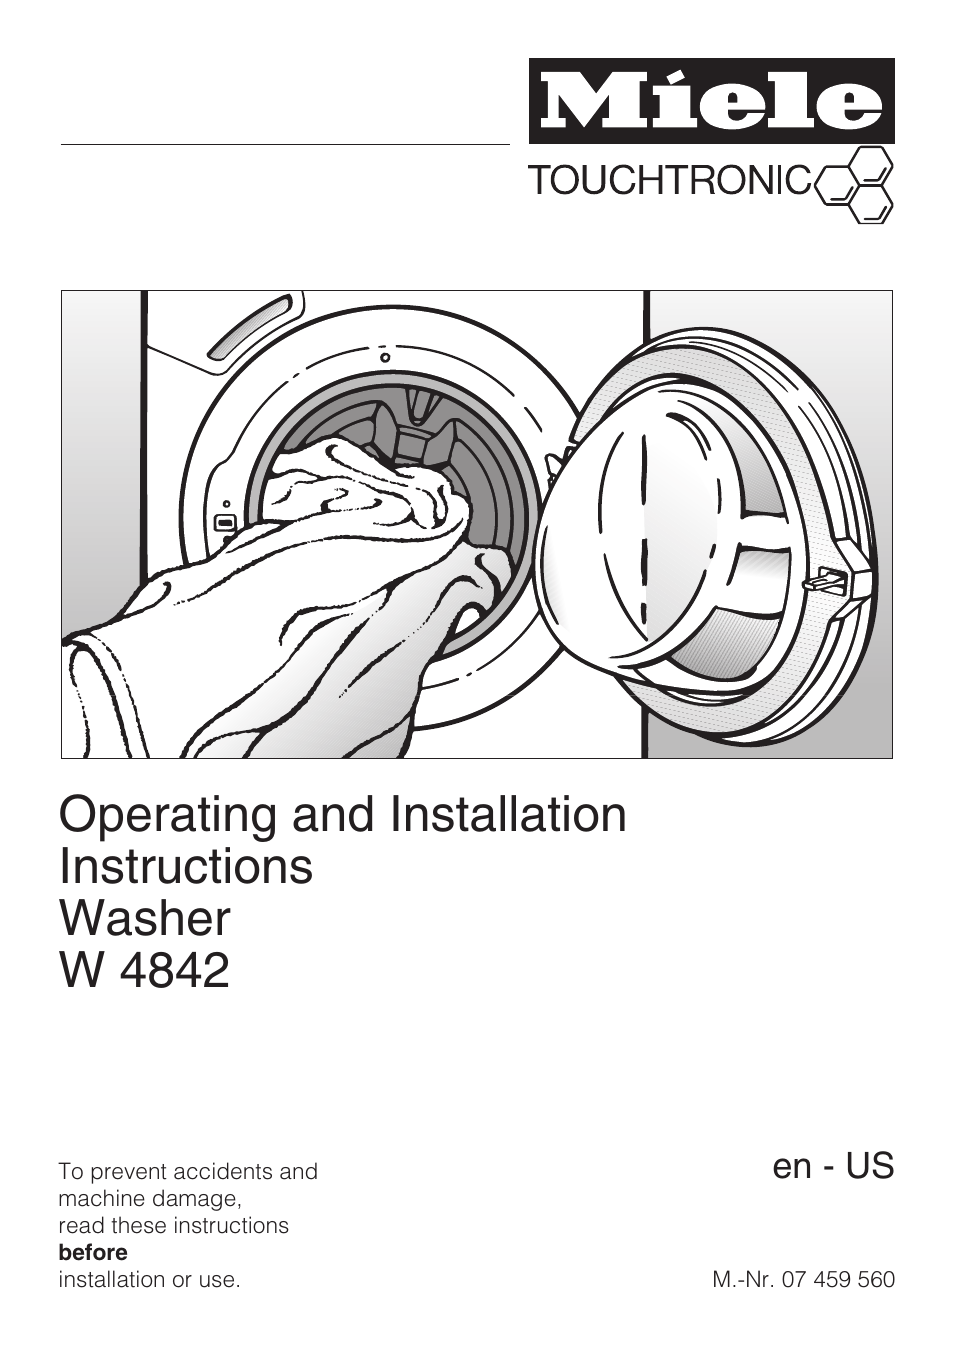 Miele Touchtronic W 4842 User Manual